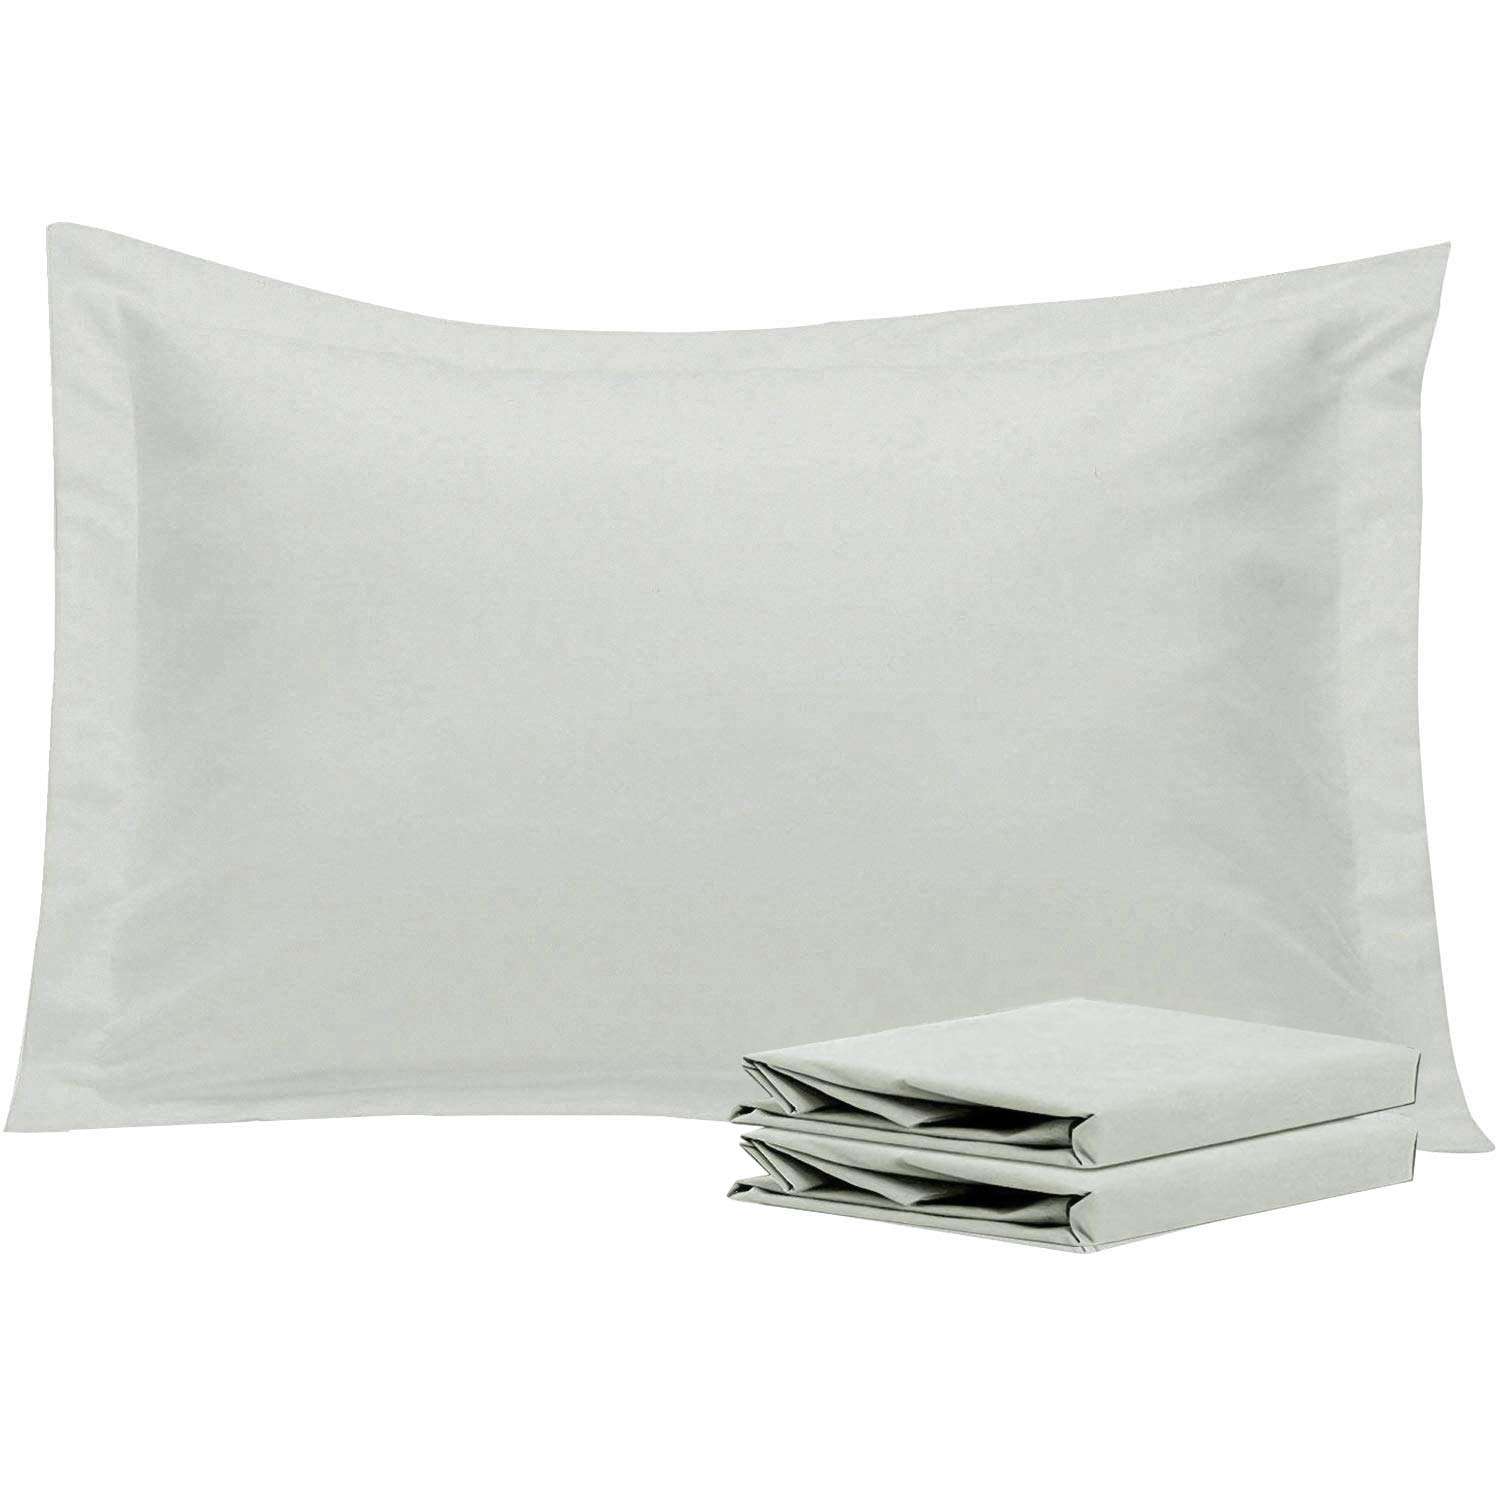 NTBAY Queen Pillow Shams, Set of 2, 100% Brushed Microfiber, Soft and Cozy, Wrinkle, Fade, Stain Resistant (Light Grey, Queen)